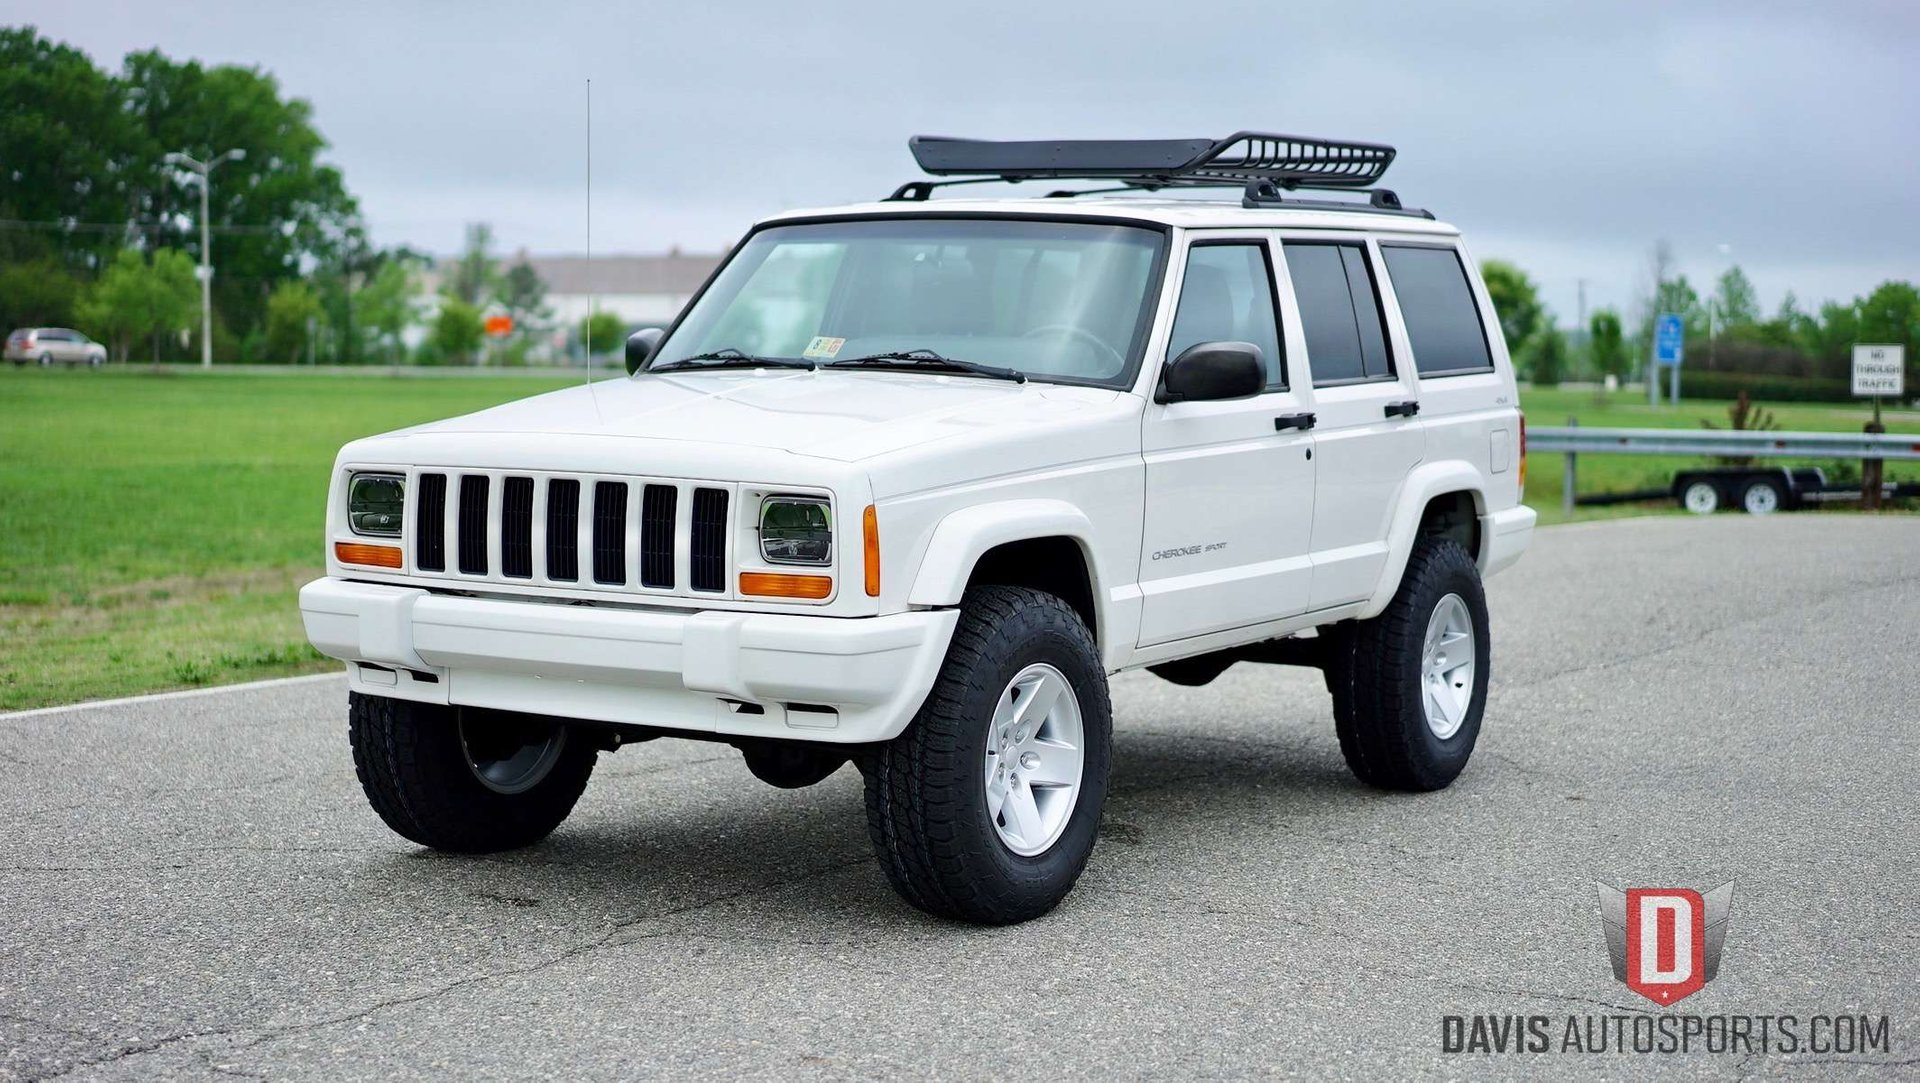 2000 jeep cherokee more pics and video coming soon